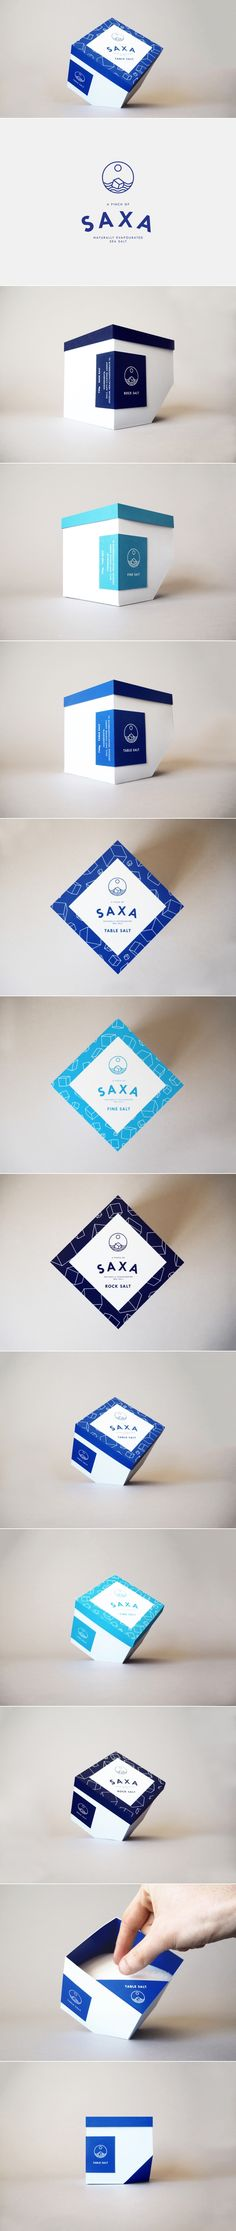 Concept: Saxa Rebrand — The Dieline | Packaging & Branding Design & Innovation News